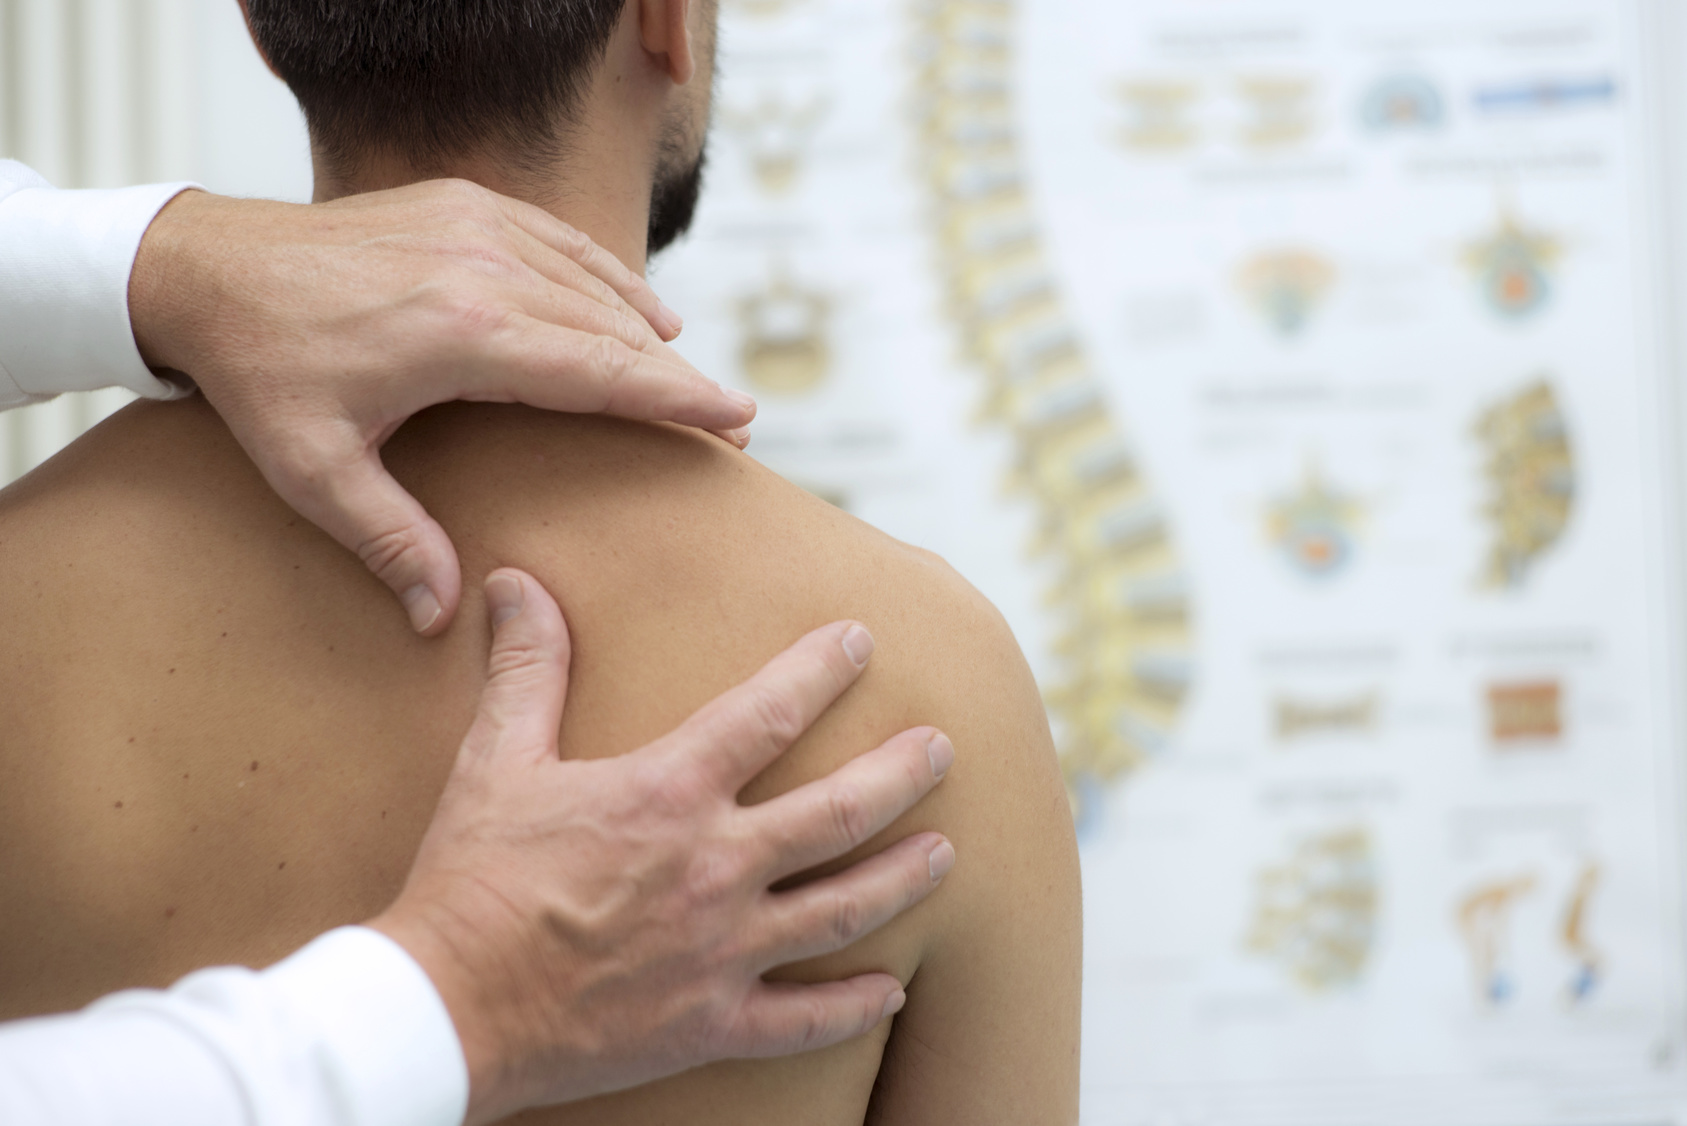 How Soon After Surgery Can You Have Chiropractic Treatment?